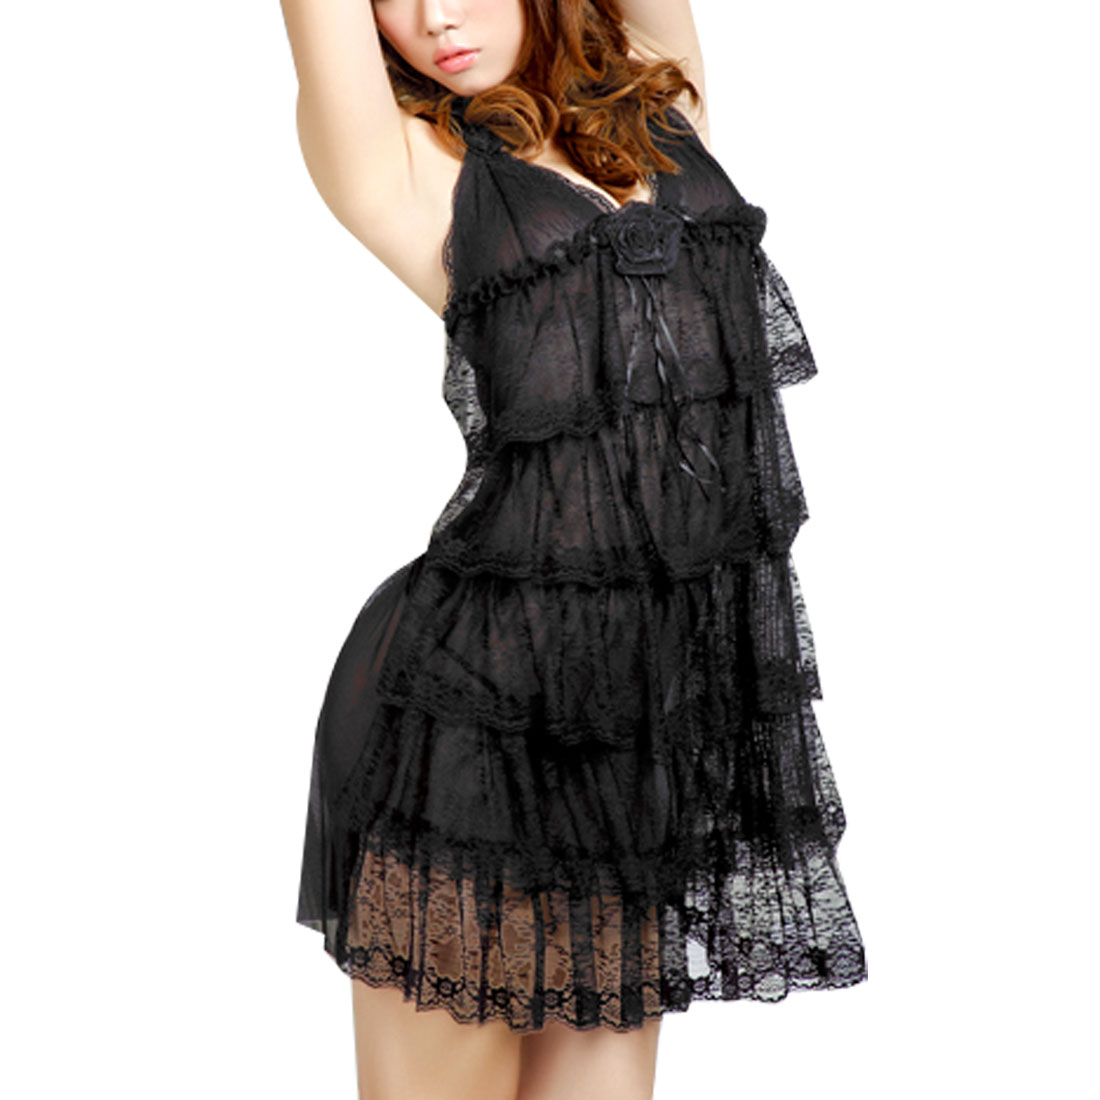 Ladies Black Sheer Deep V Neck Tiered Sexy Lingerie Dress G-String XS